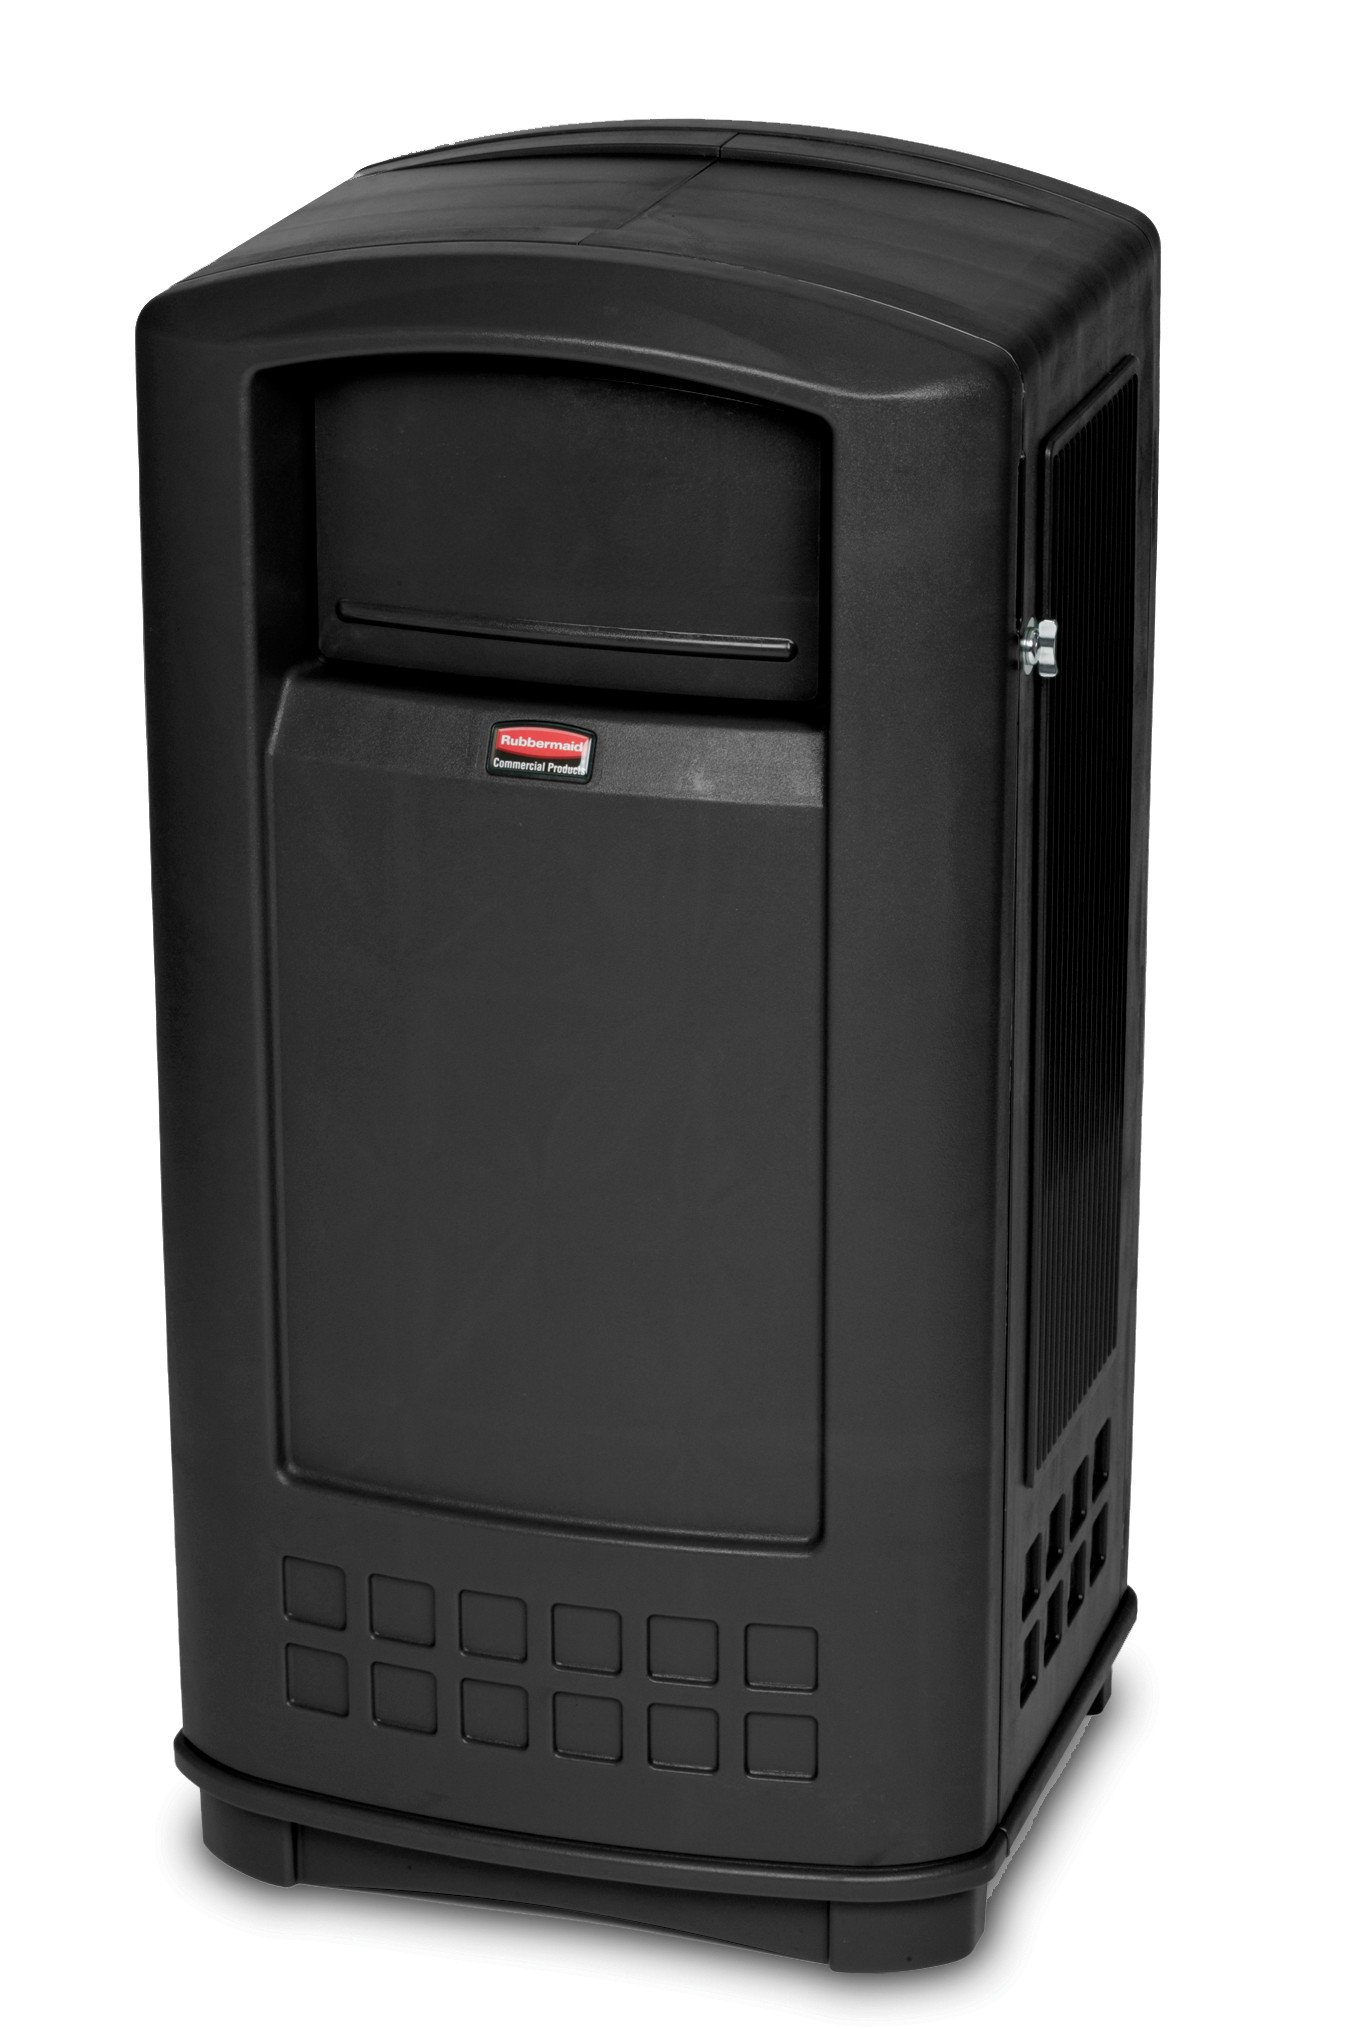 Rubbermaid Commercial Plaza Jr. Trash Can, 35 Gallon, Black, FG9P9000BLA